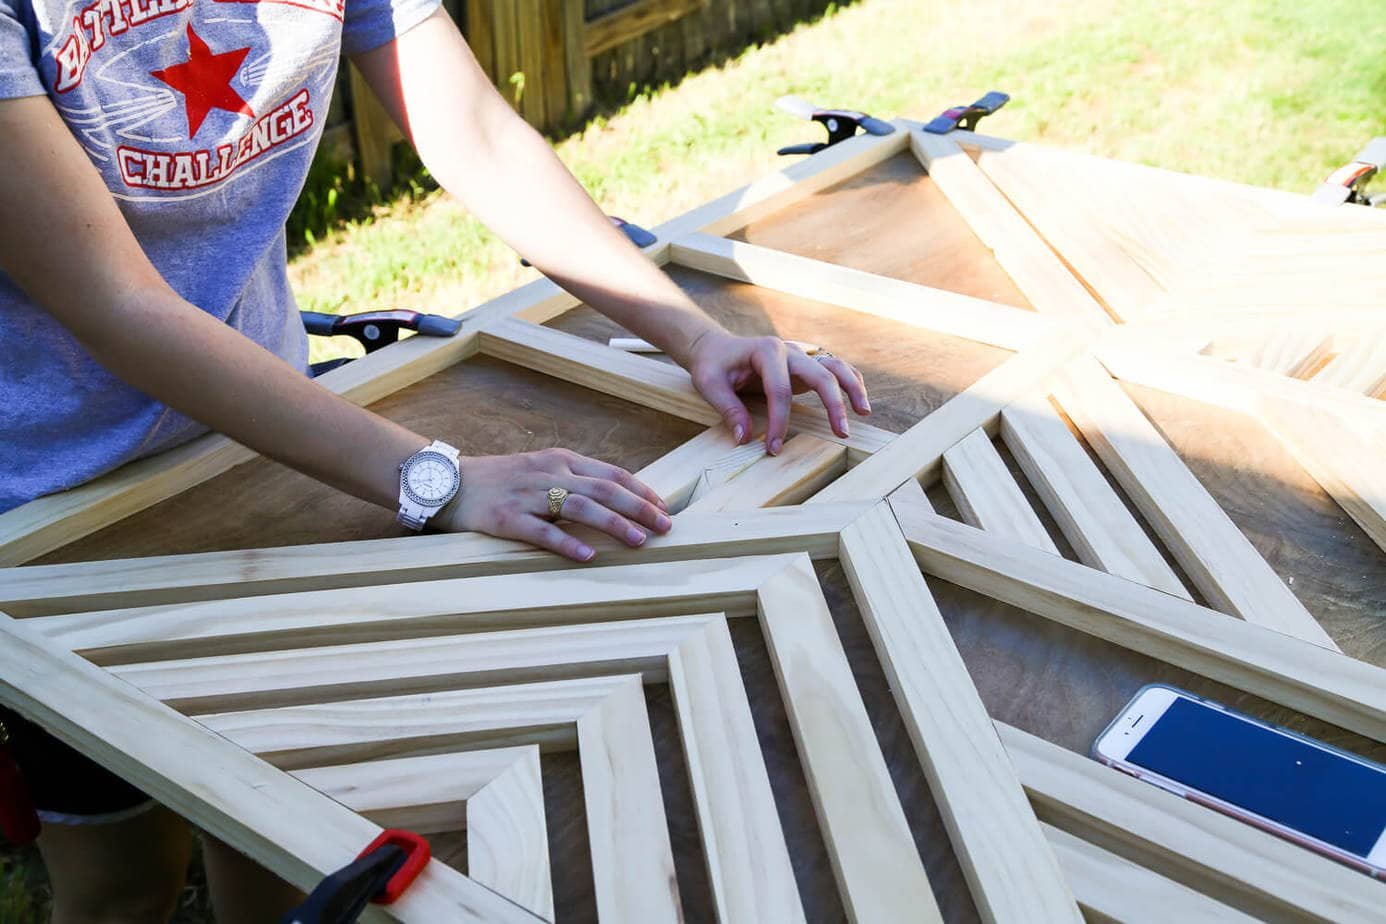 How to create a gorgeous large-scale wood wall art piece for your home. You just need some glue and a saw to cut it down! It's so easy that even a total beginner can do it, and it's absolutely gorgeous!